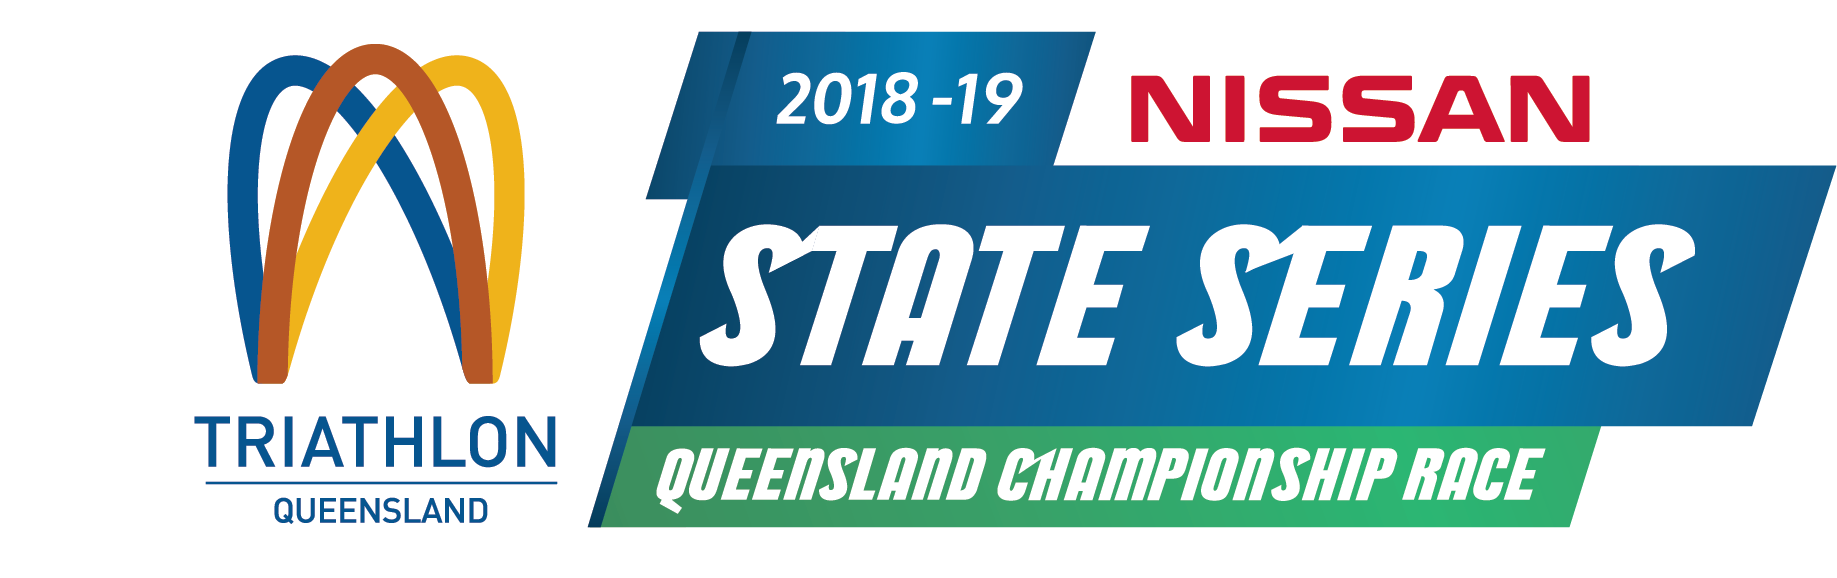 2018-19 Nissan State Series Championship Race logo